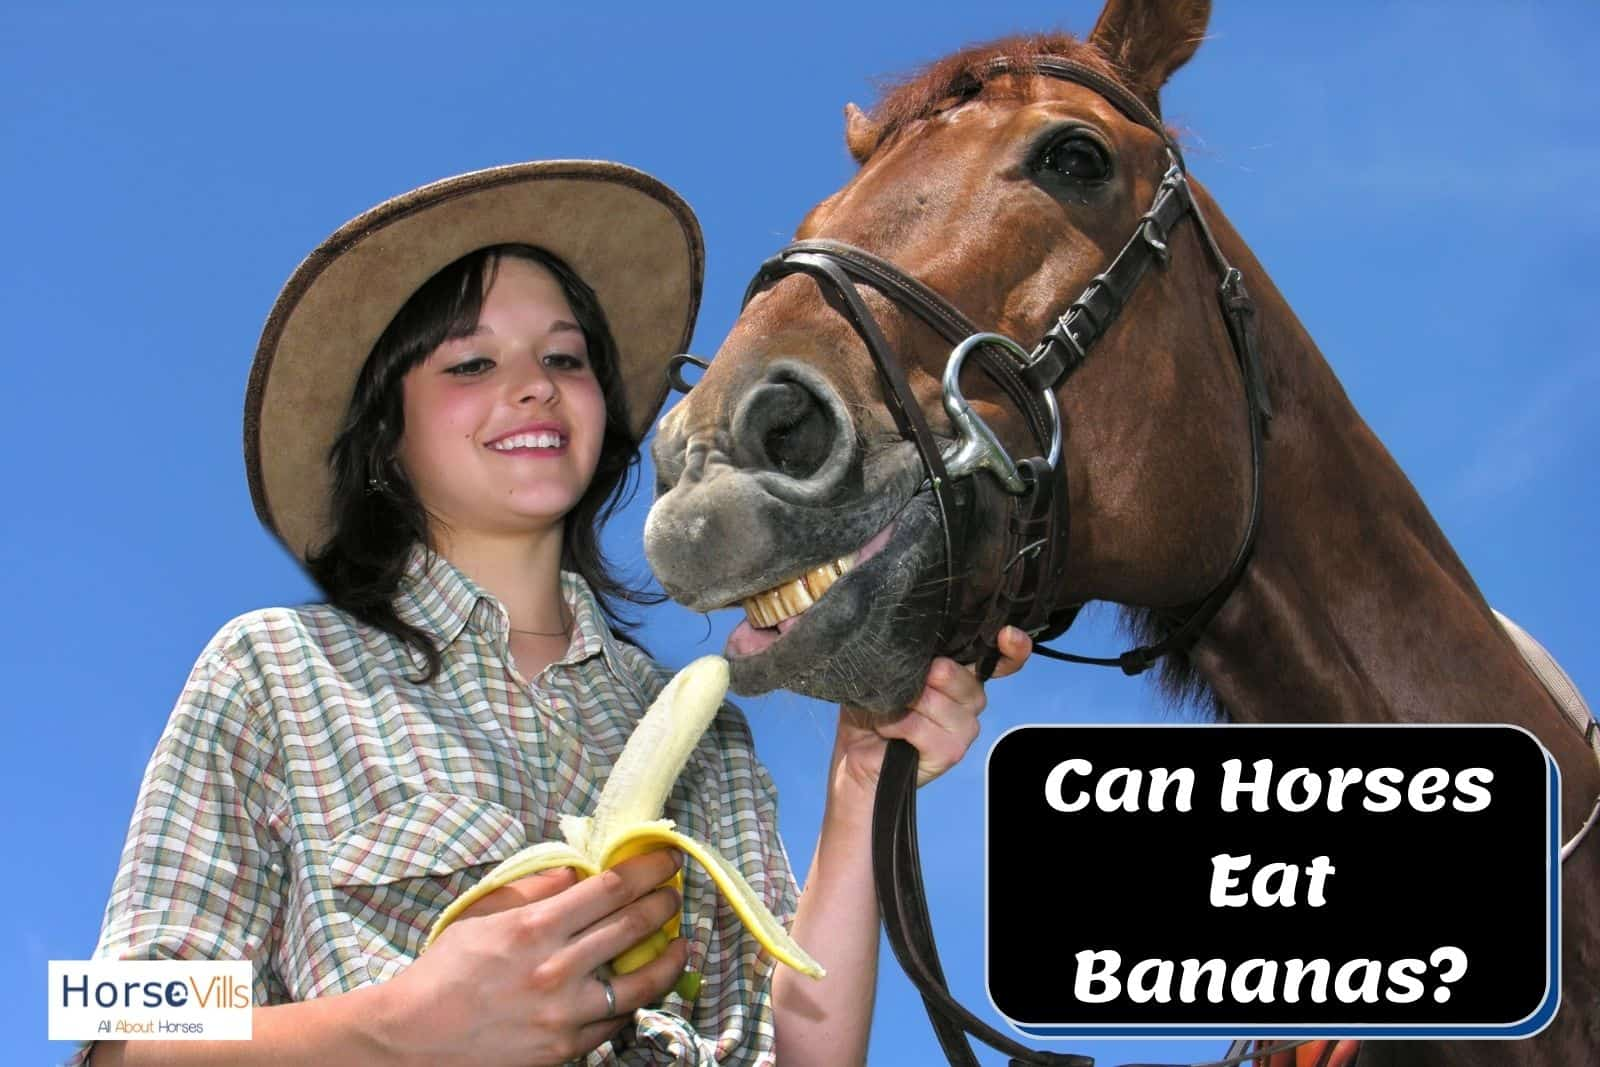 A lady giving banana to a brown horse but can horses eat bananas?